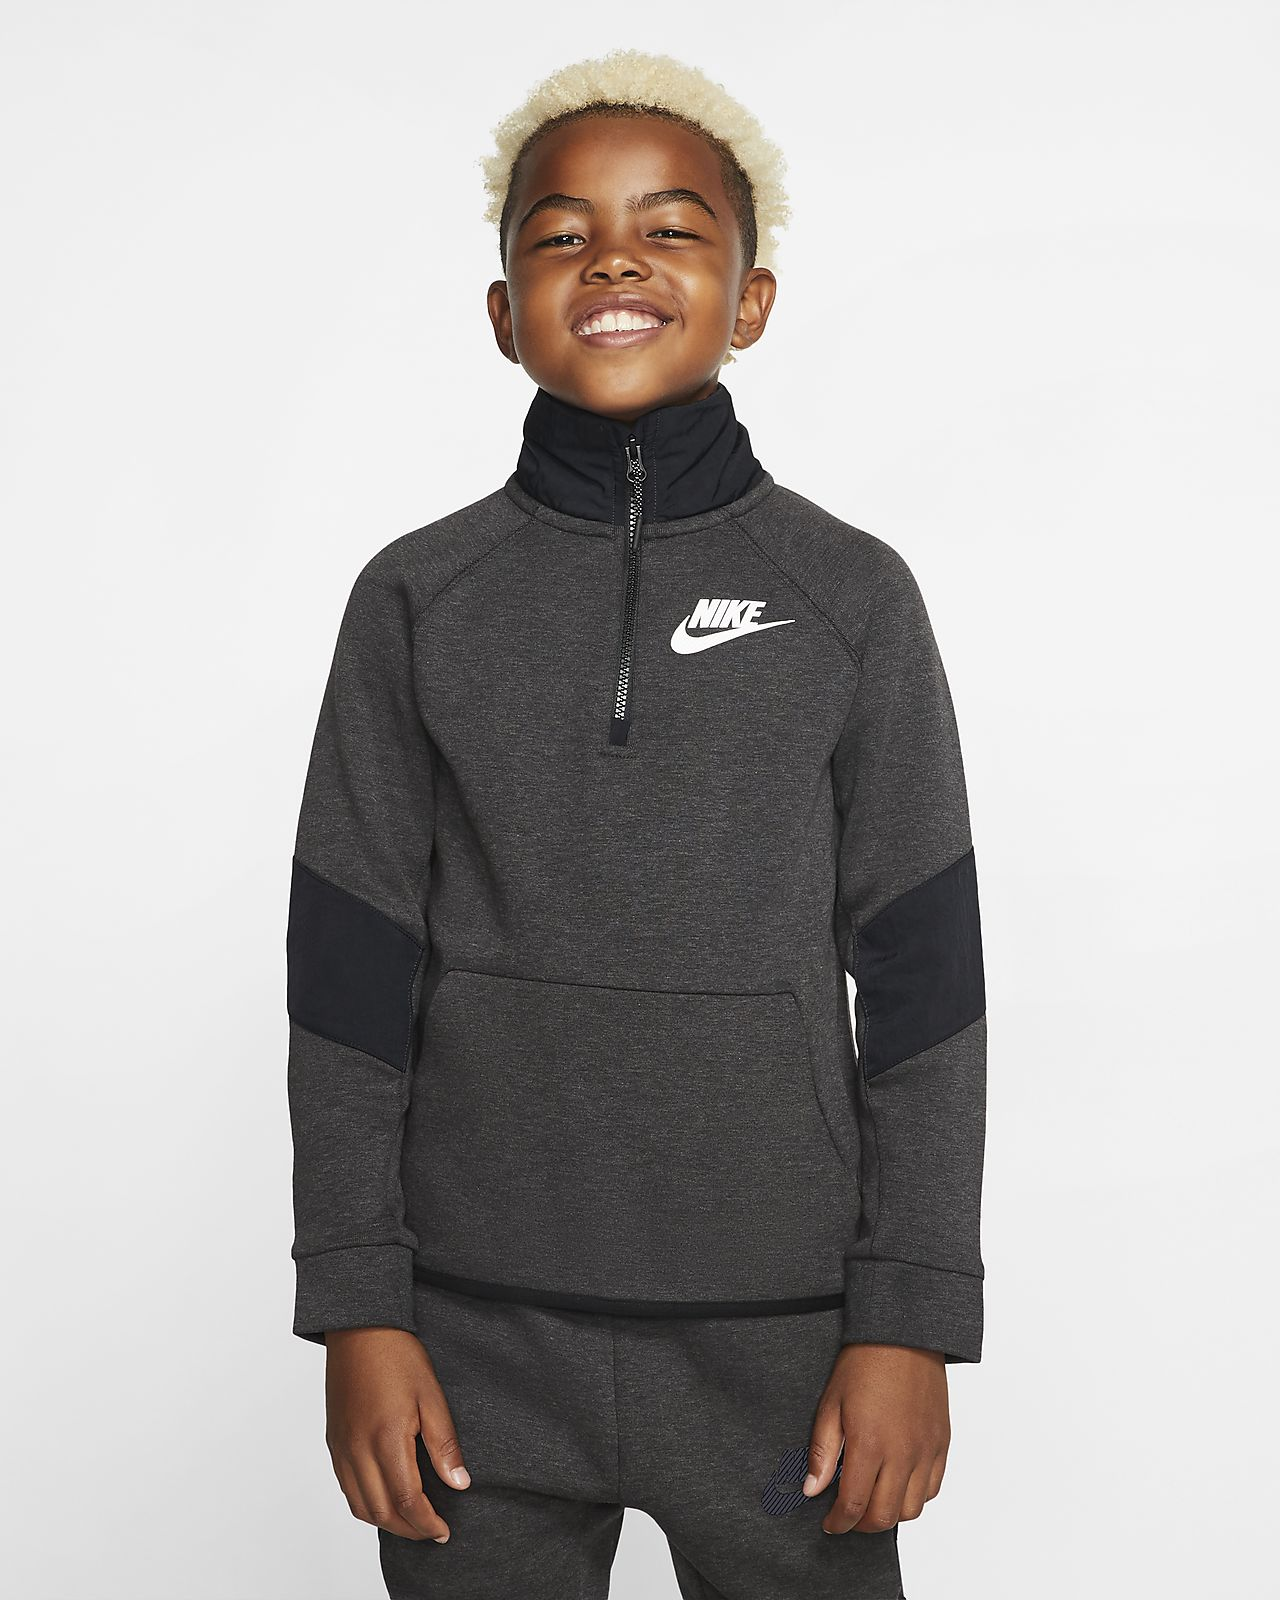 Nike Sportswear Tech Fleece Older Kids' Long-Sleeve Top